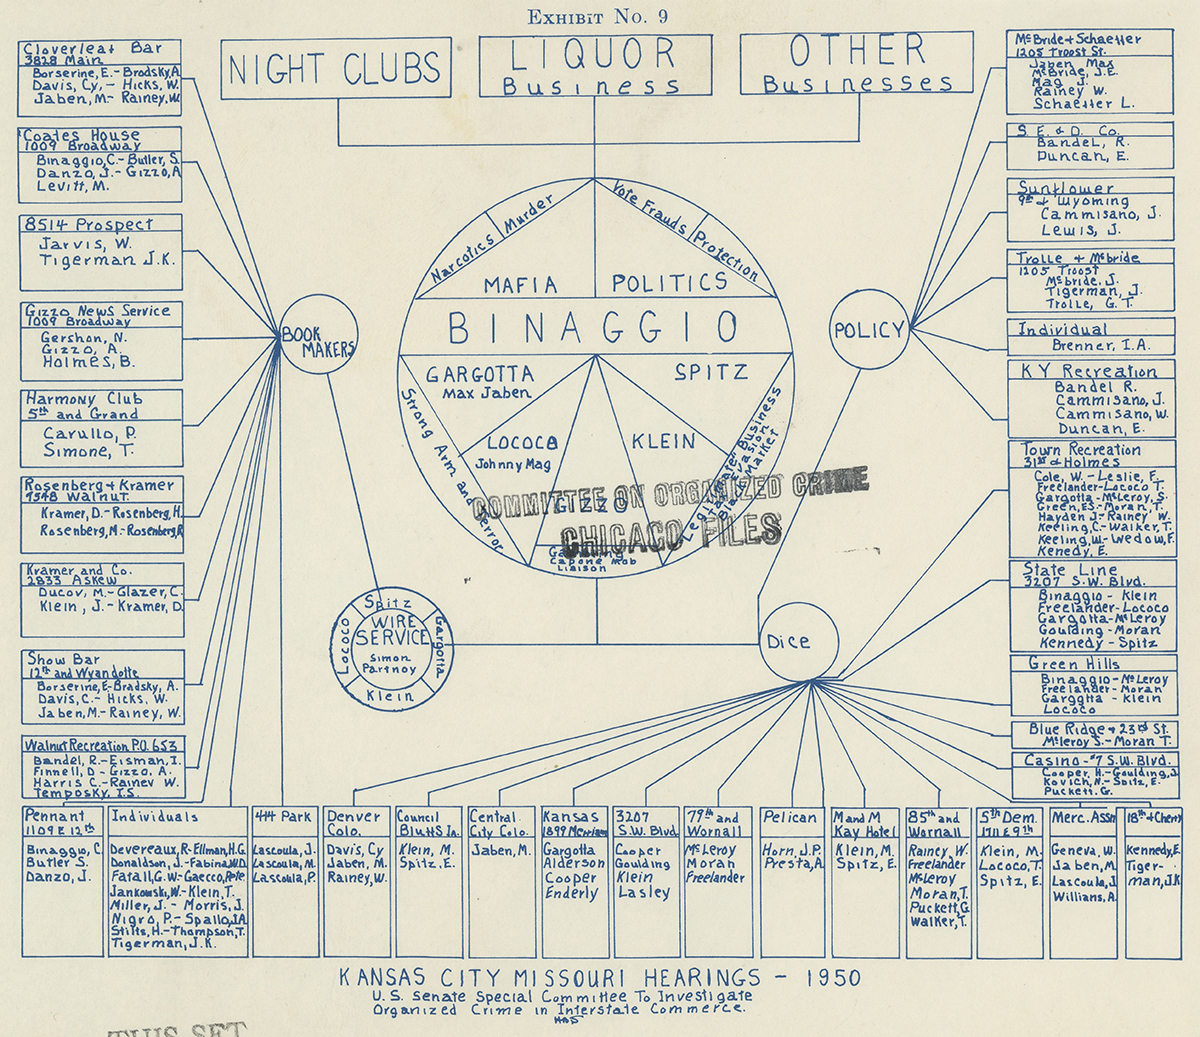 Diagram submitted to the Kefauver Committee, illustrating the activities of the Kansas City mob during Charles Binaggio's leadership, 1950. National Archives at Washington, D.C. The Pendergast Years.